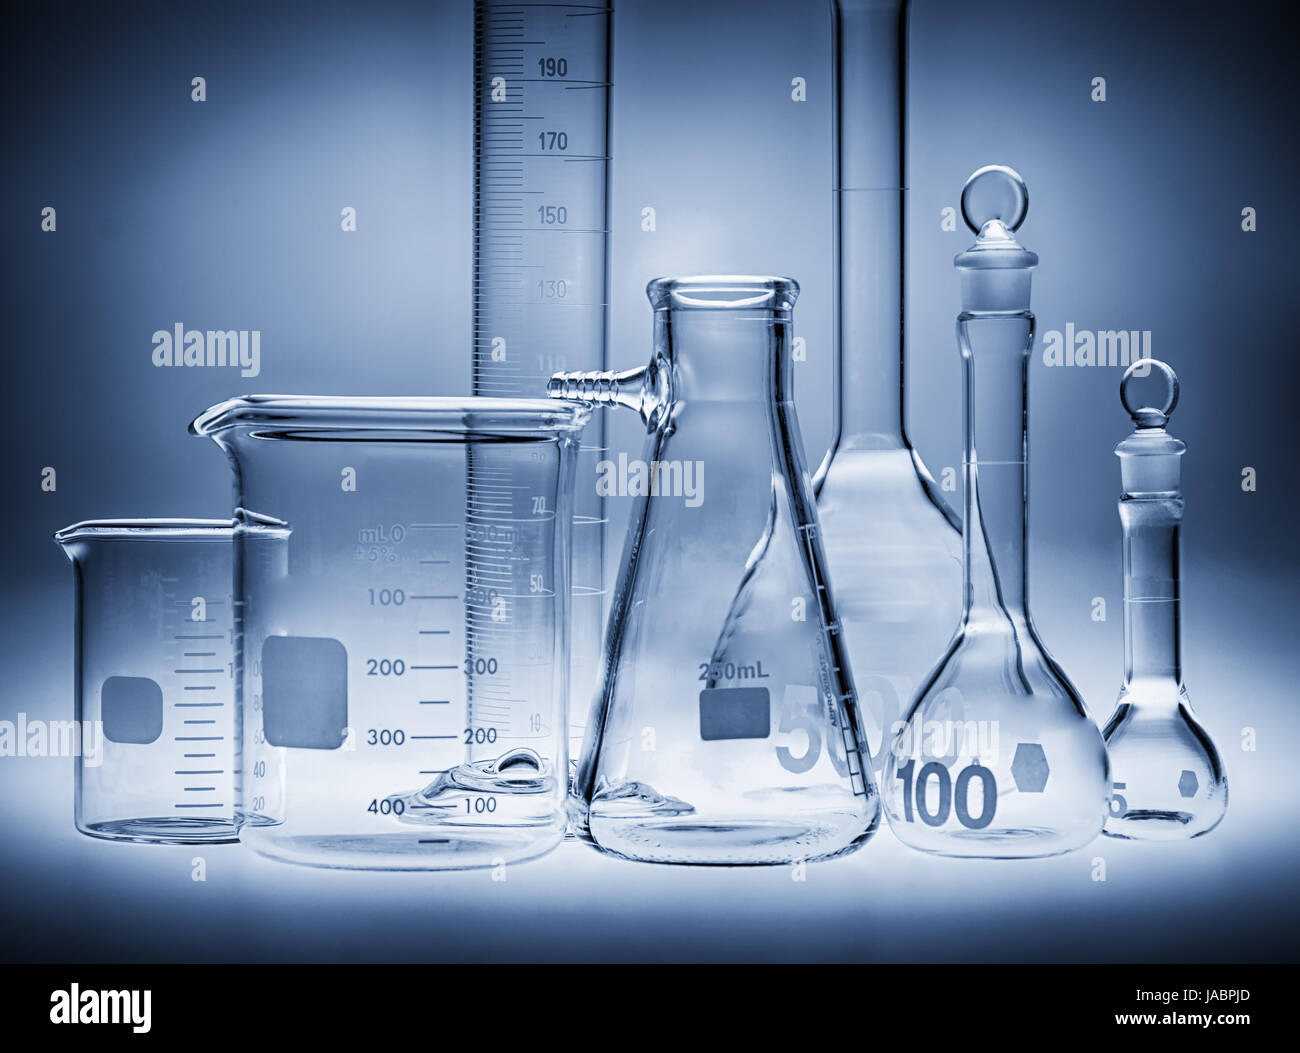 Glassware and beakers used in biology labs - Stock Image